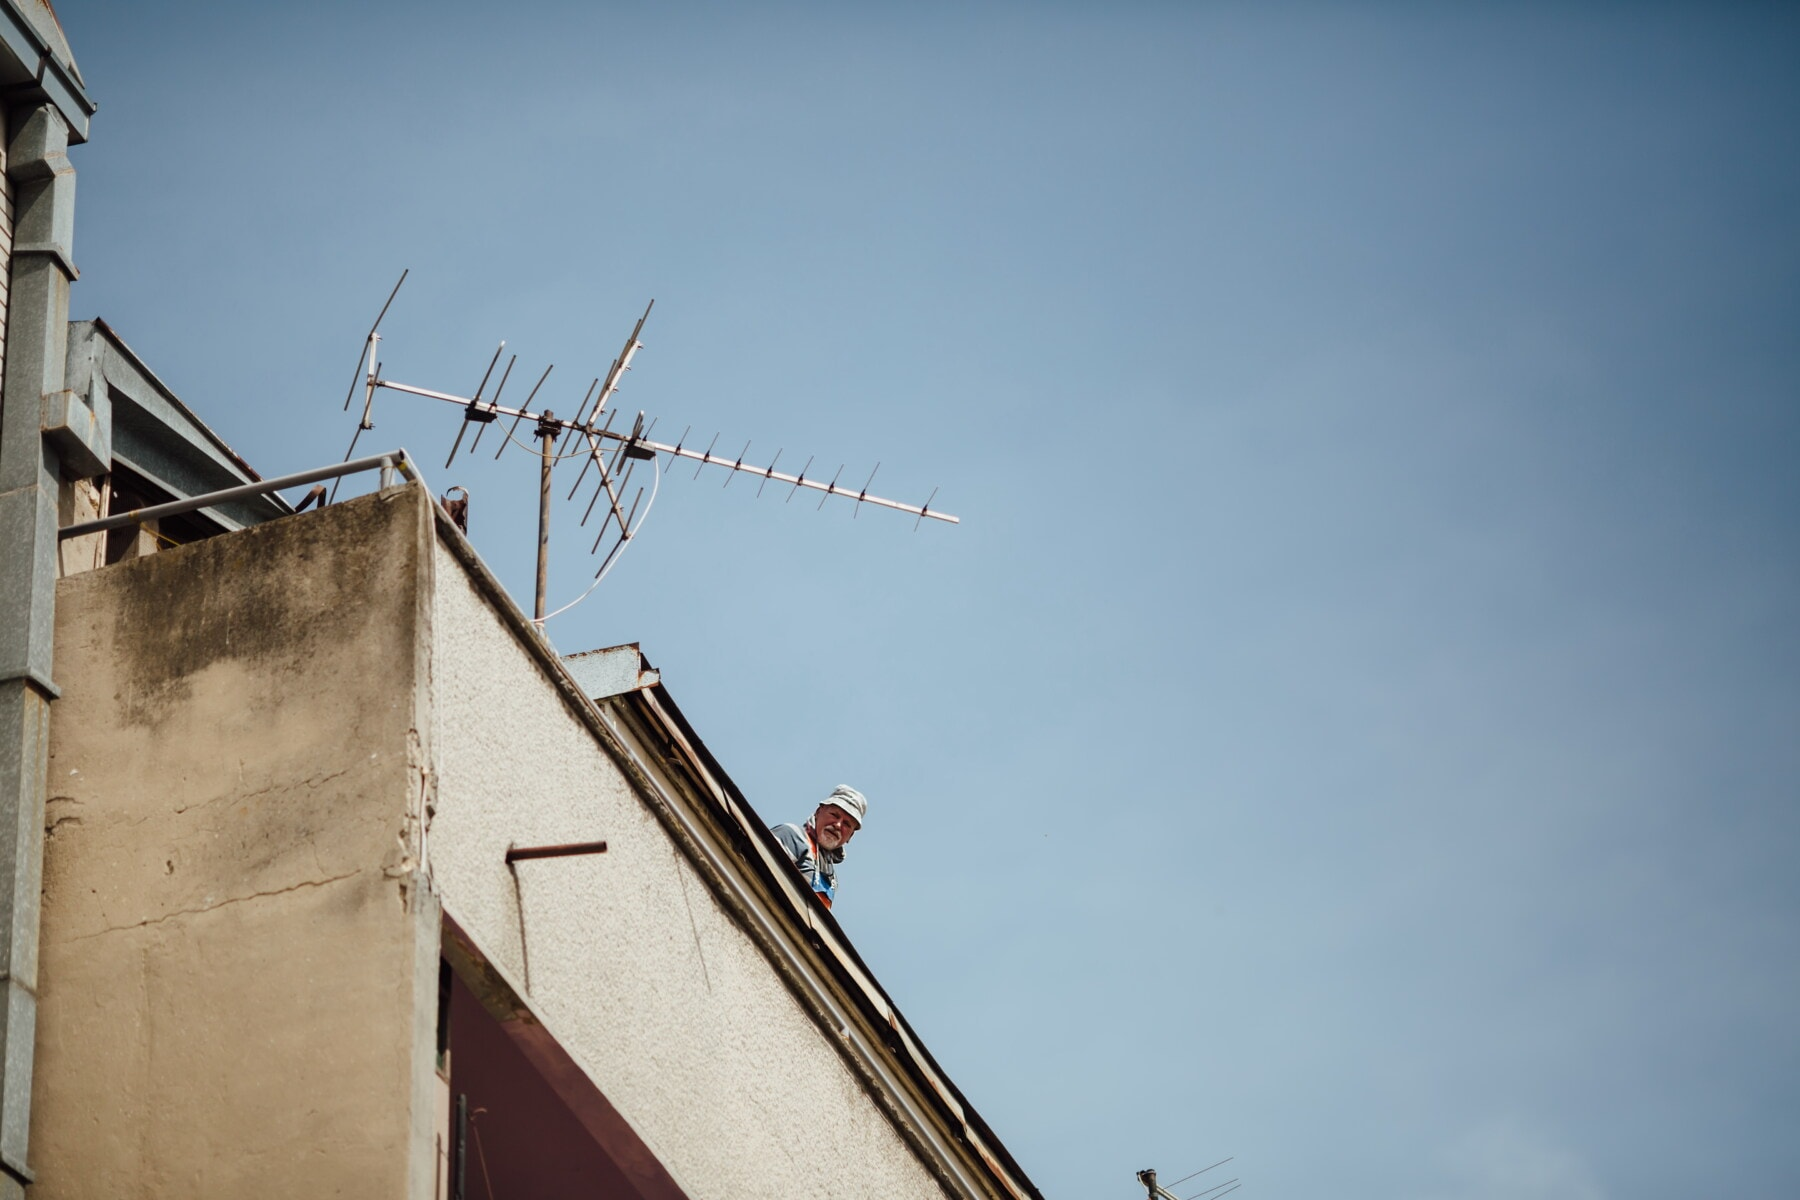 pensioner, roof, rooftop, old man, building, antenna, electricity, technology, industry, wind